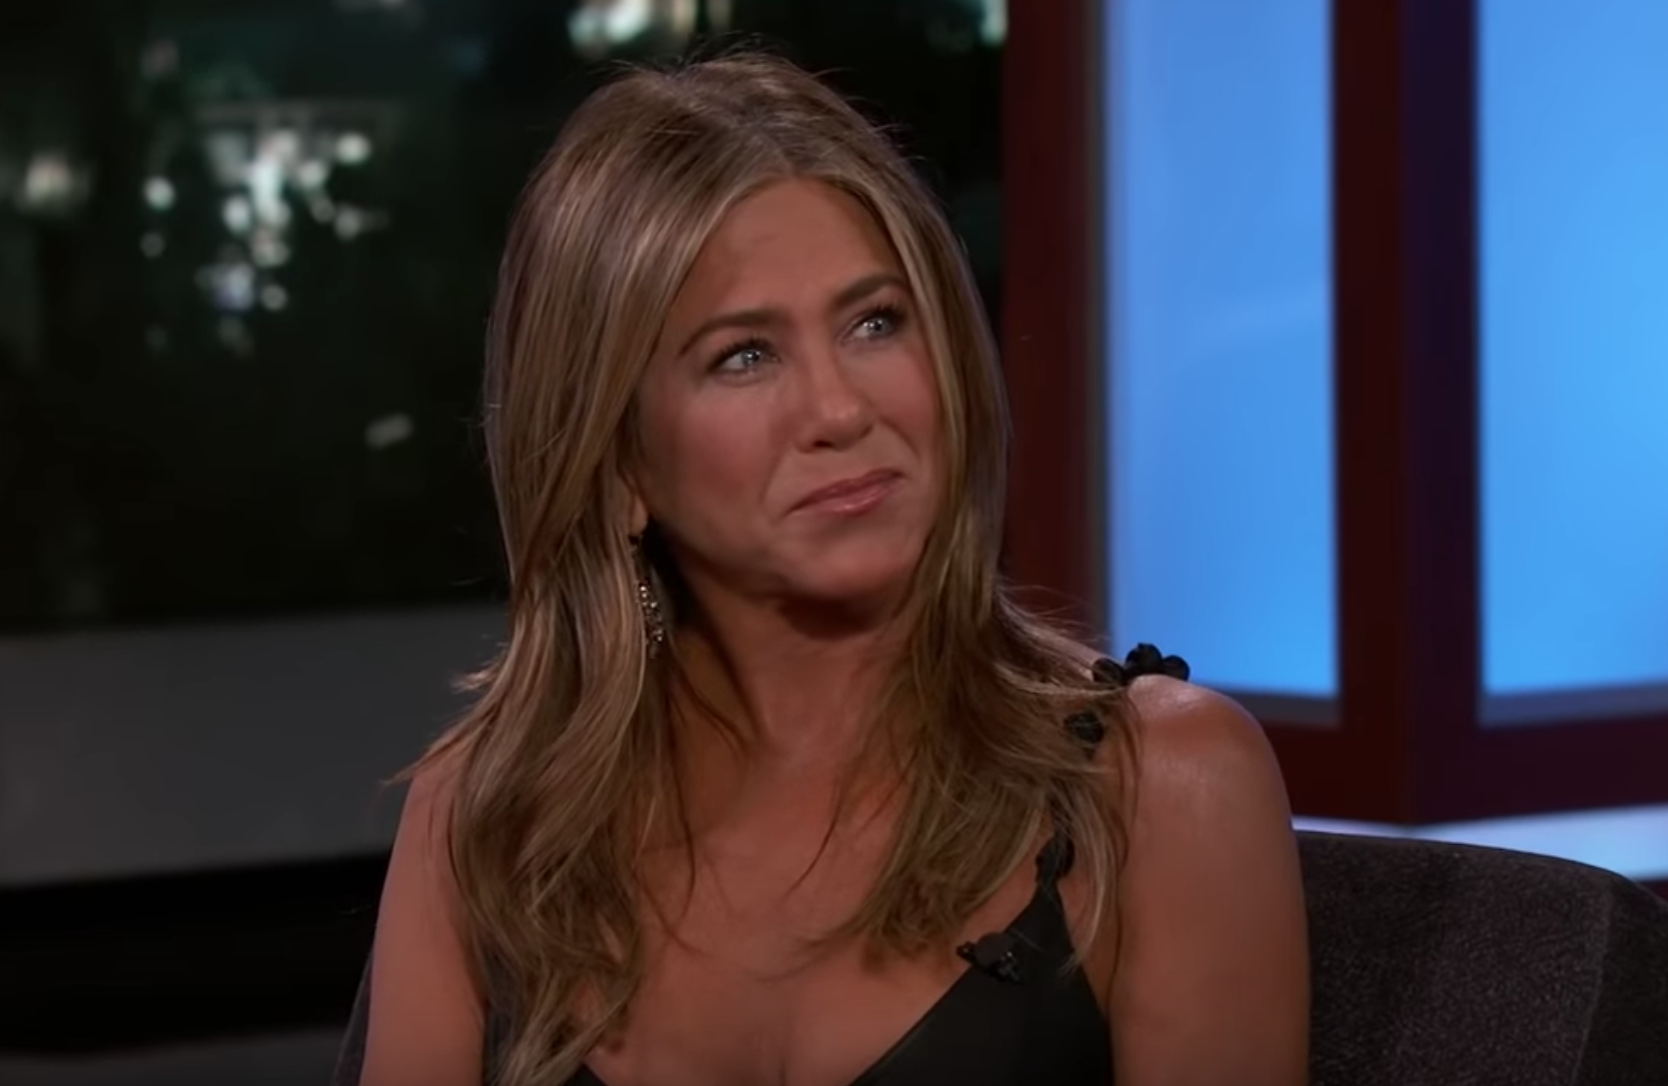 Jennifer Aniston surprises COVID-19 positive nurse on 'Kimmel'